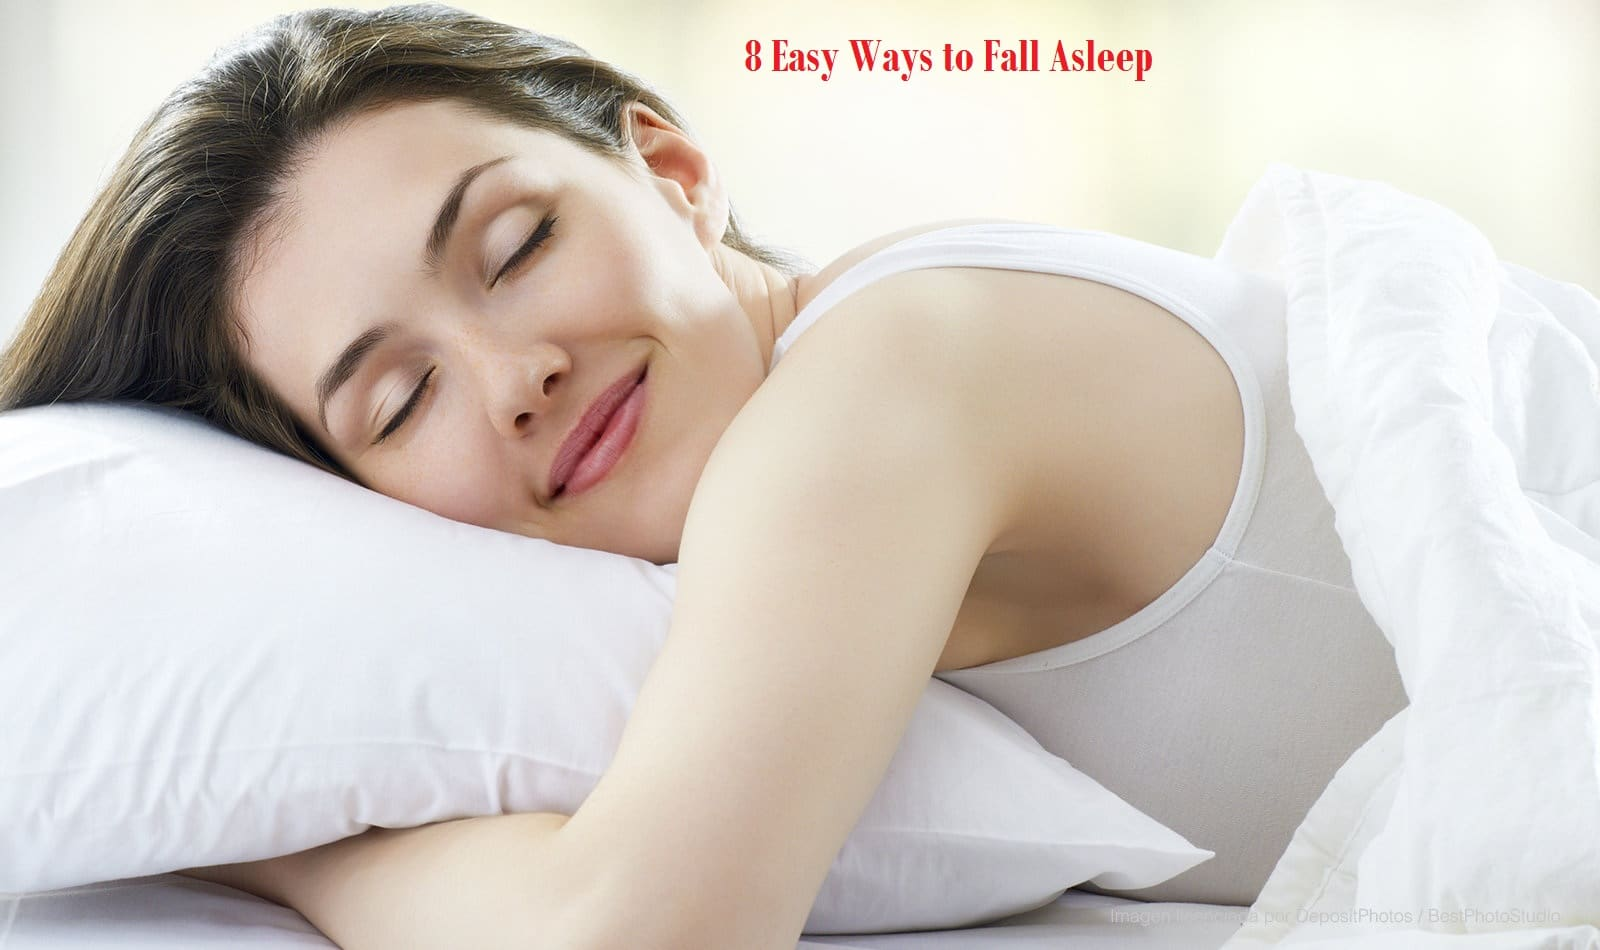 8 Easy Ways to Fall Asleep Fast